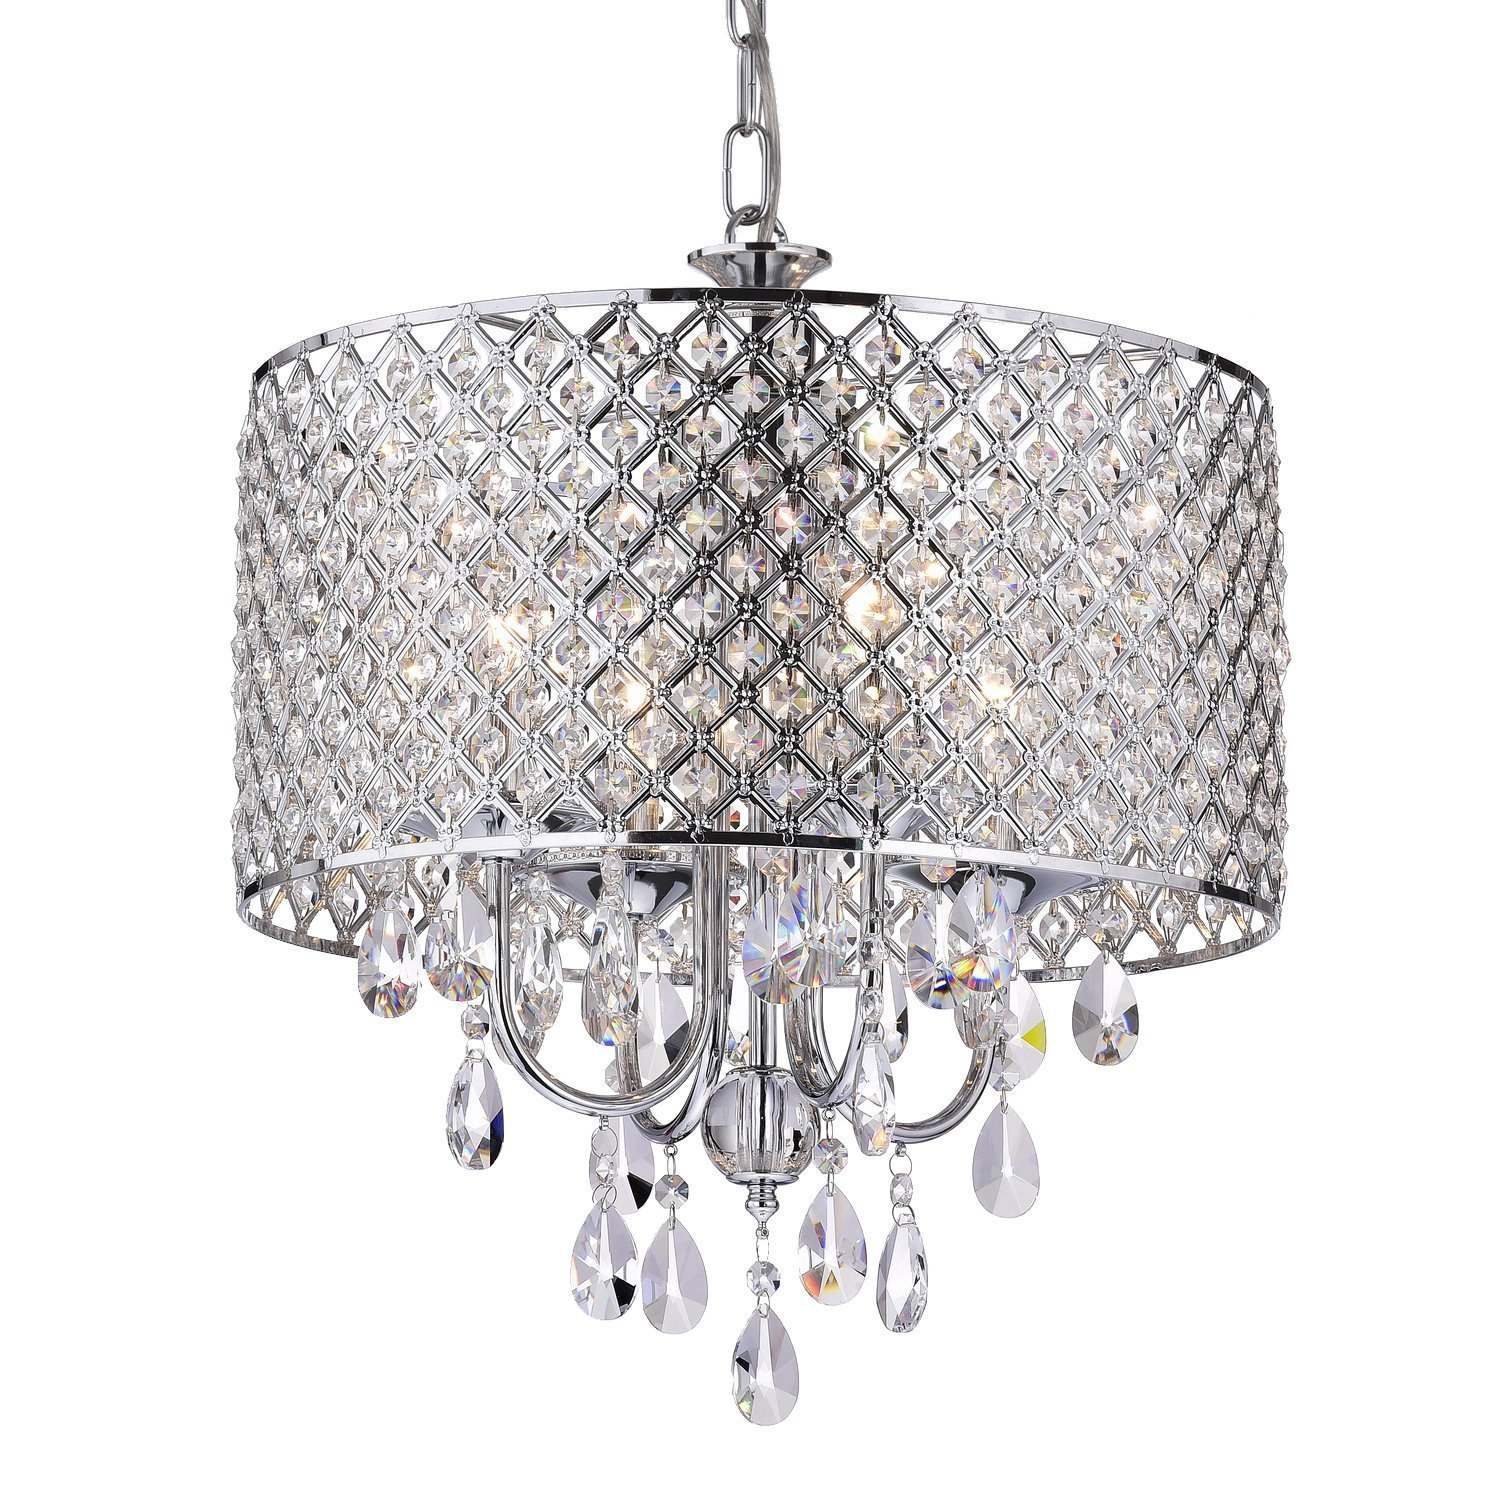 EDVIVI EPG801CH Chrome Finish Drum Shade 4-Light Crystal Chandelier Ceiling  Fixture, Round - - Amazon.com - EDVIVI EPG801CH Chrome Finish Drum Shade 4-Light Crystal